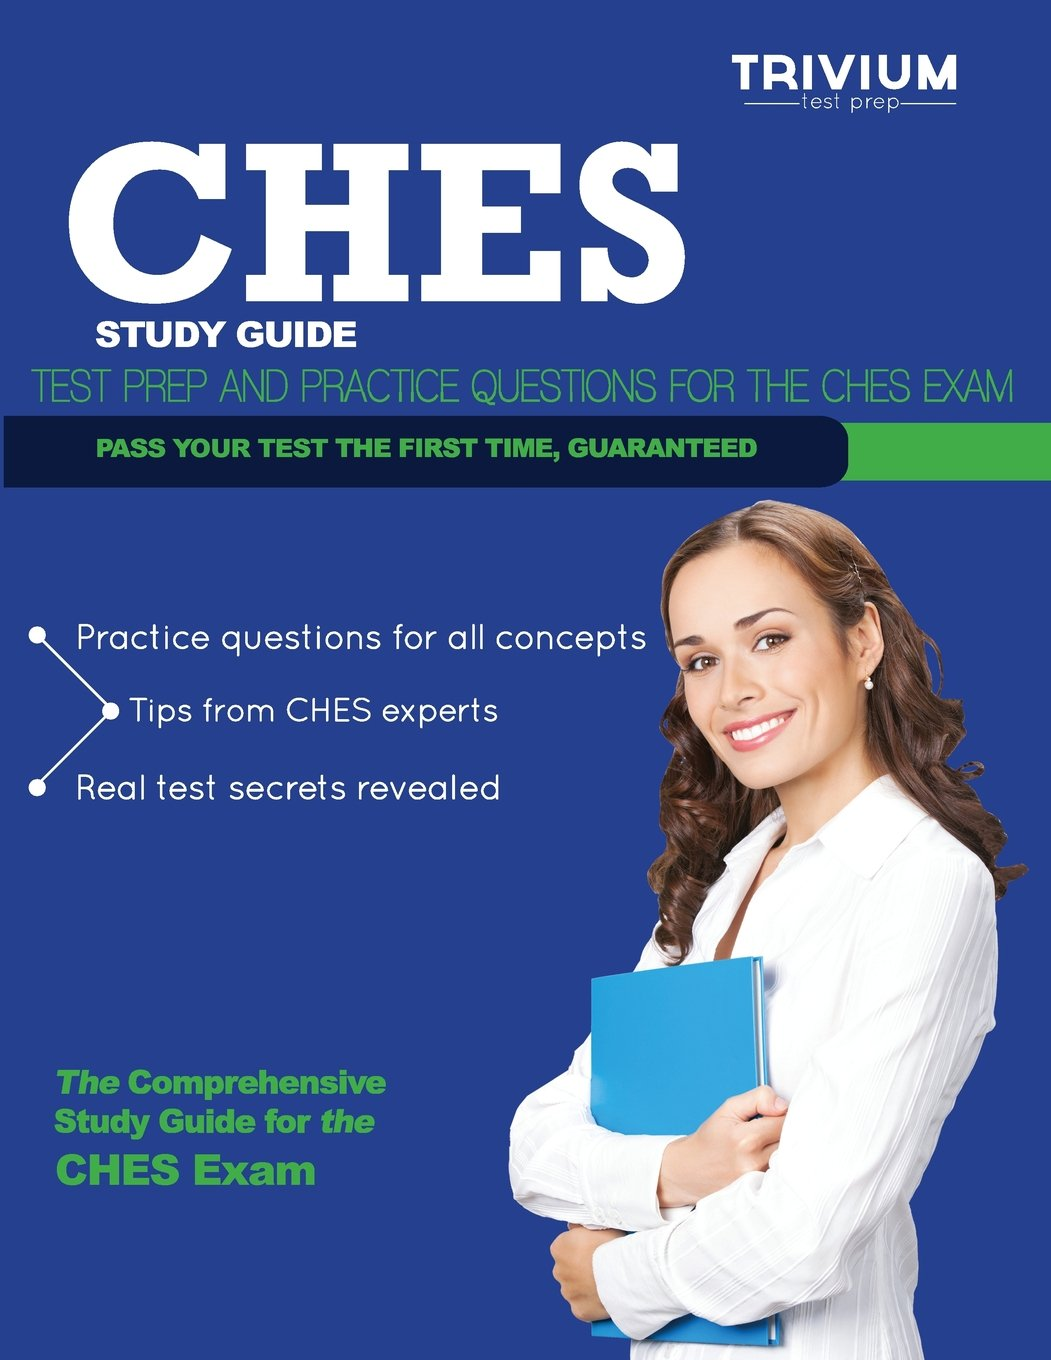 Ches Study Guide: Test Prep and Practice Questions for the Ches Exam:  Trivium Test Prep: 9781939587992: Books - Amazon.ca